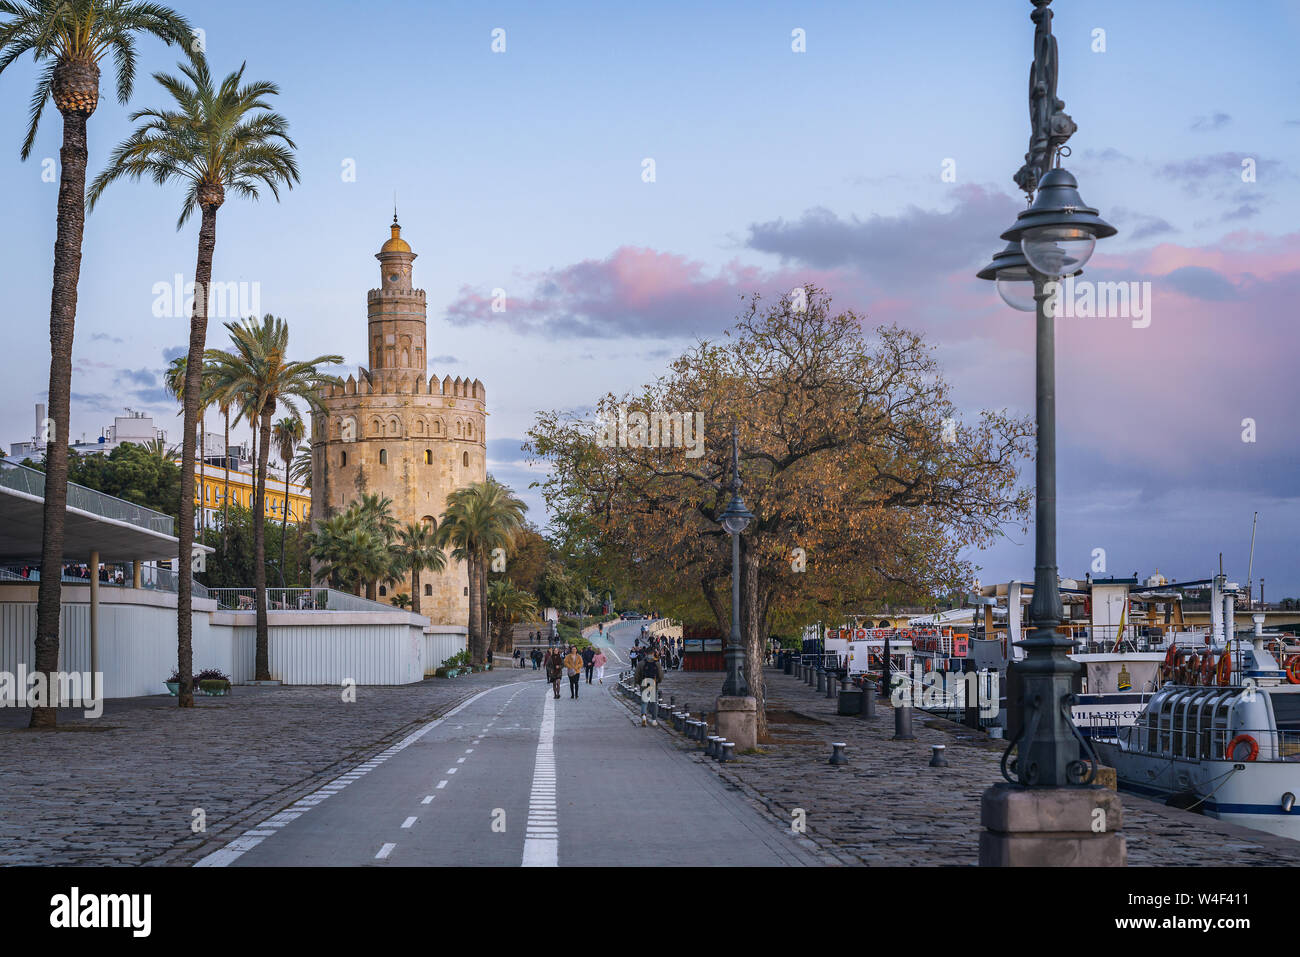 Torre del Oro tower - Seville, Andalusia, Spain Stock Photo